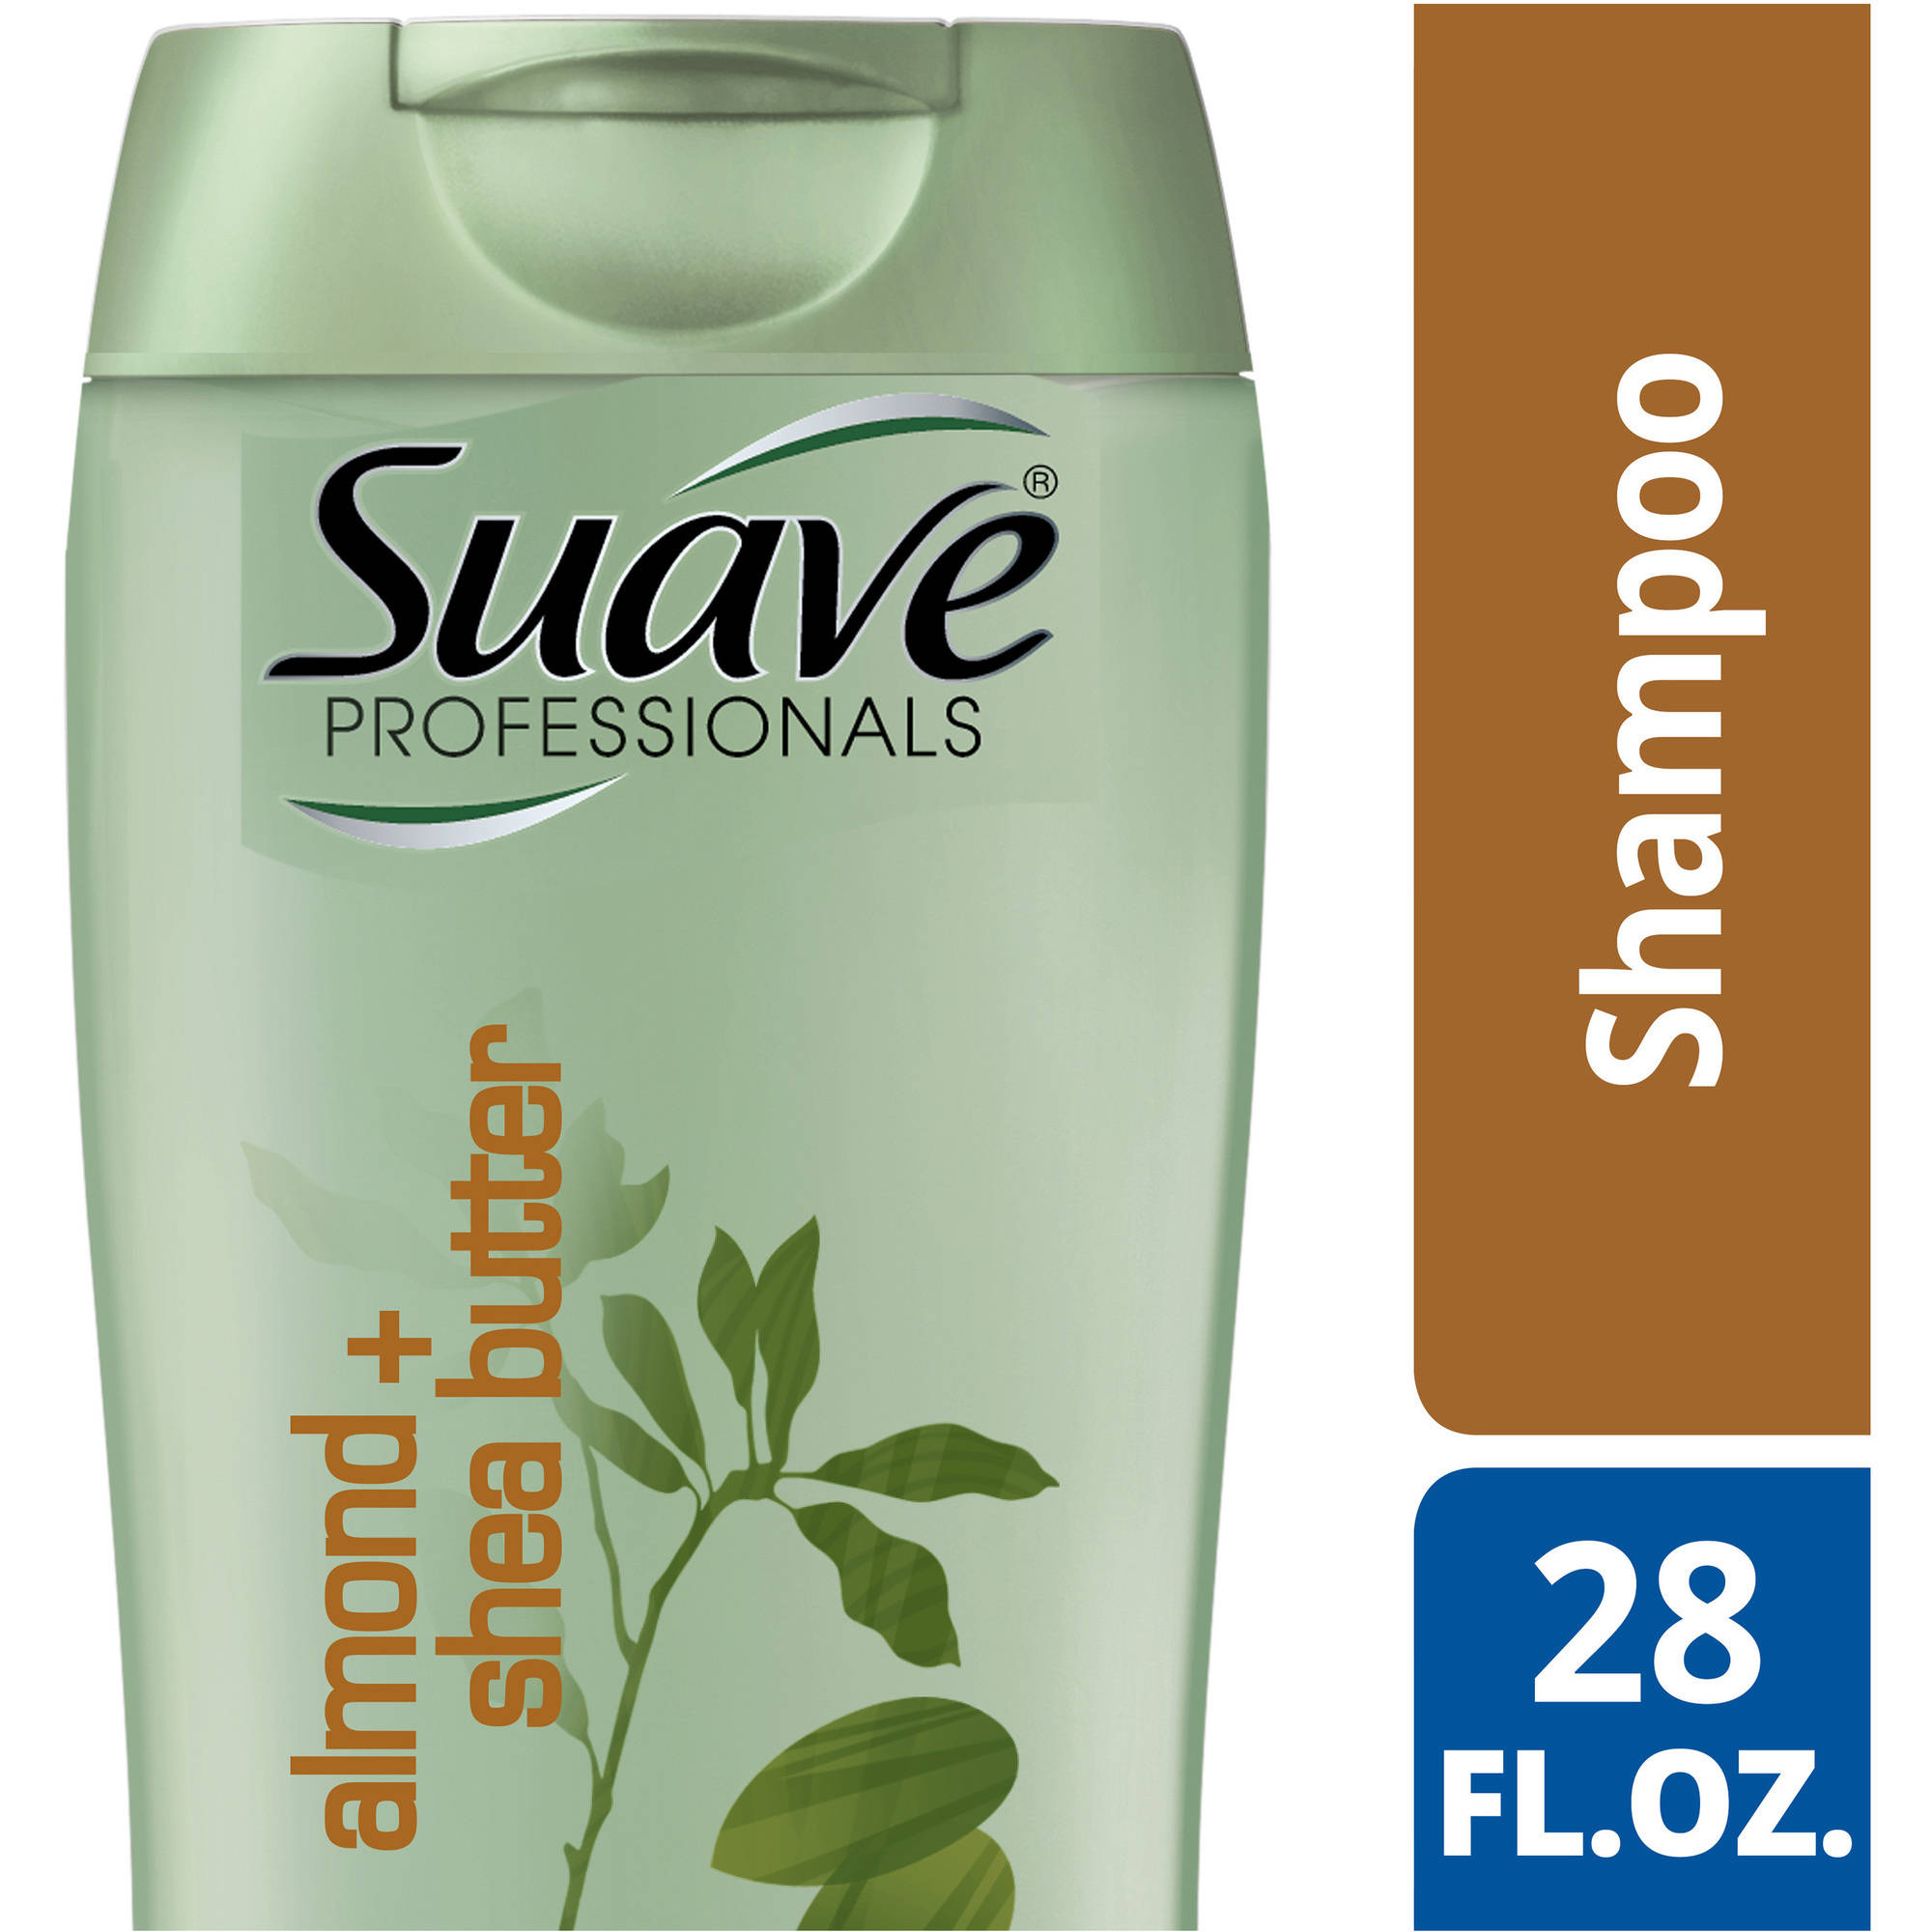 Suave Professionals Almond and Shea Butter Shampoo, 28 oz